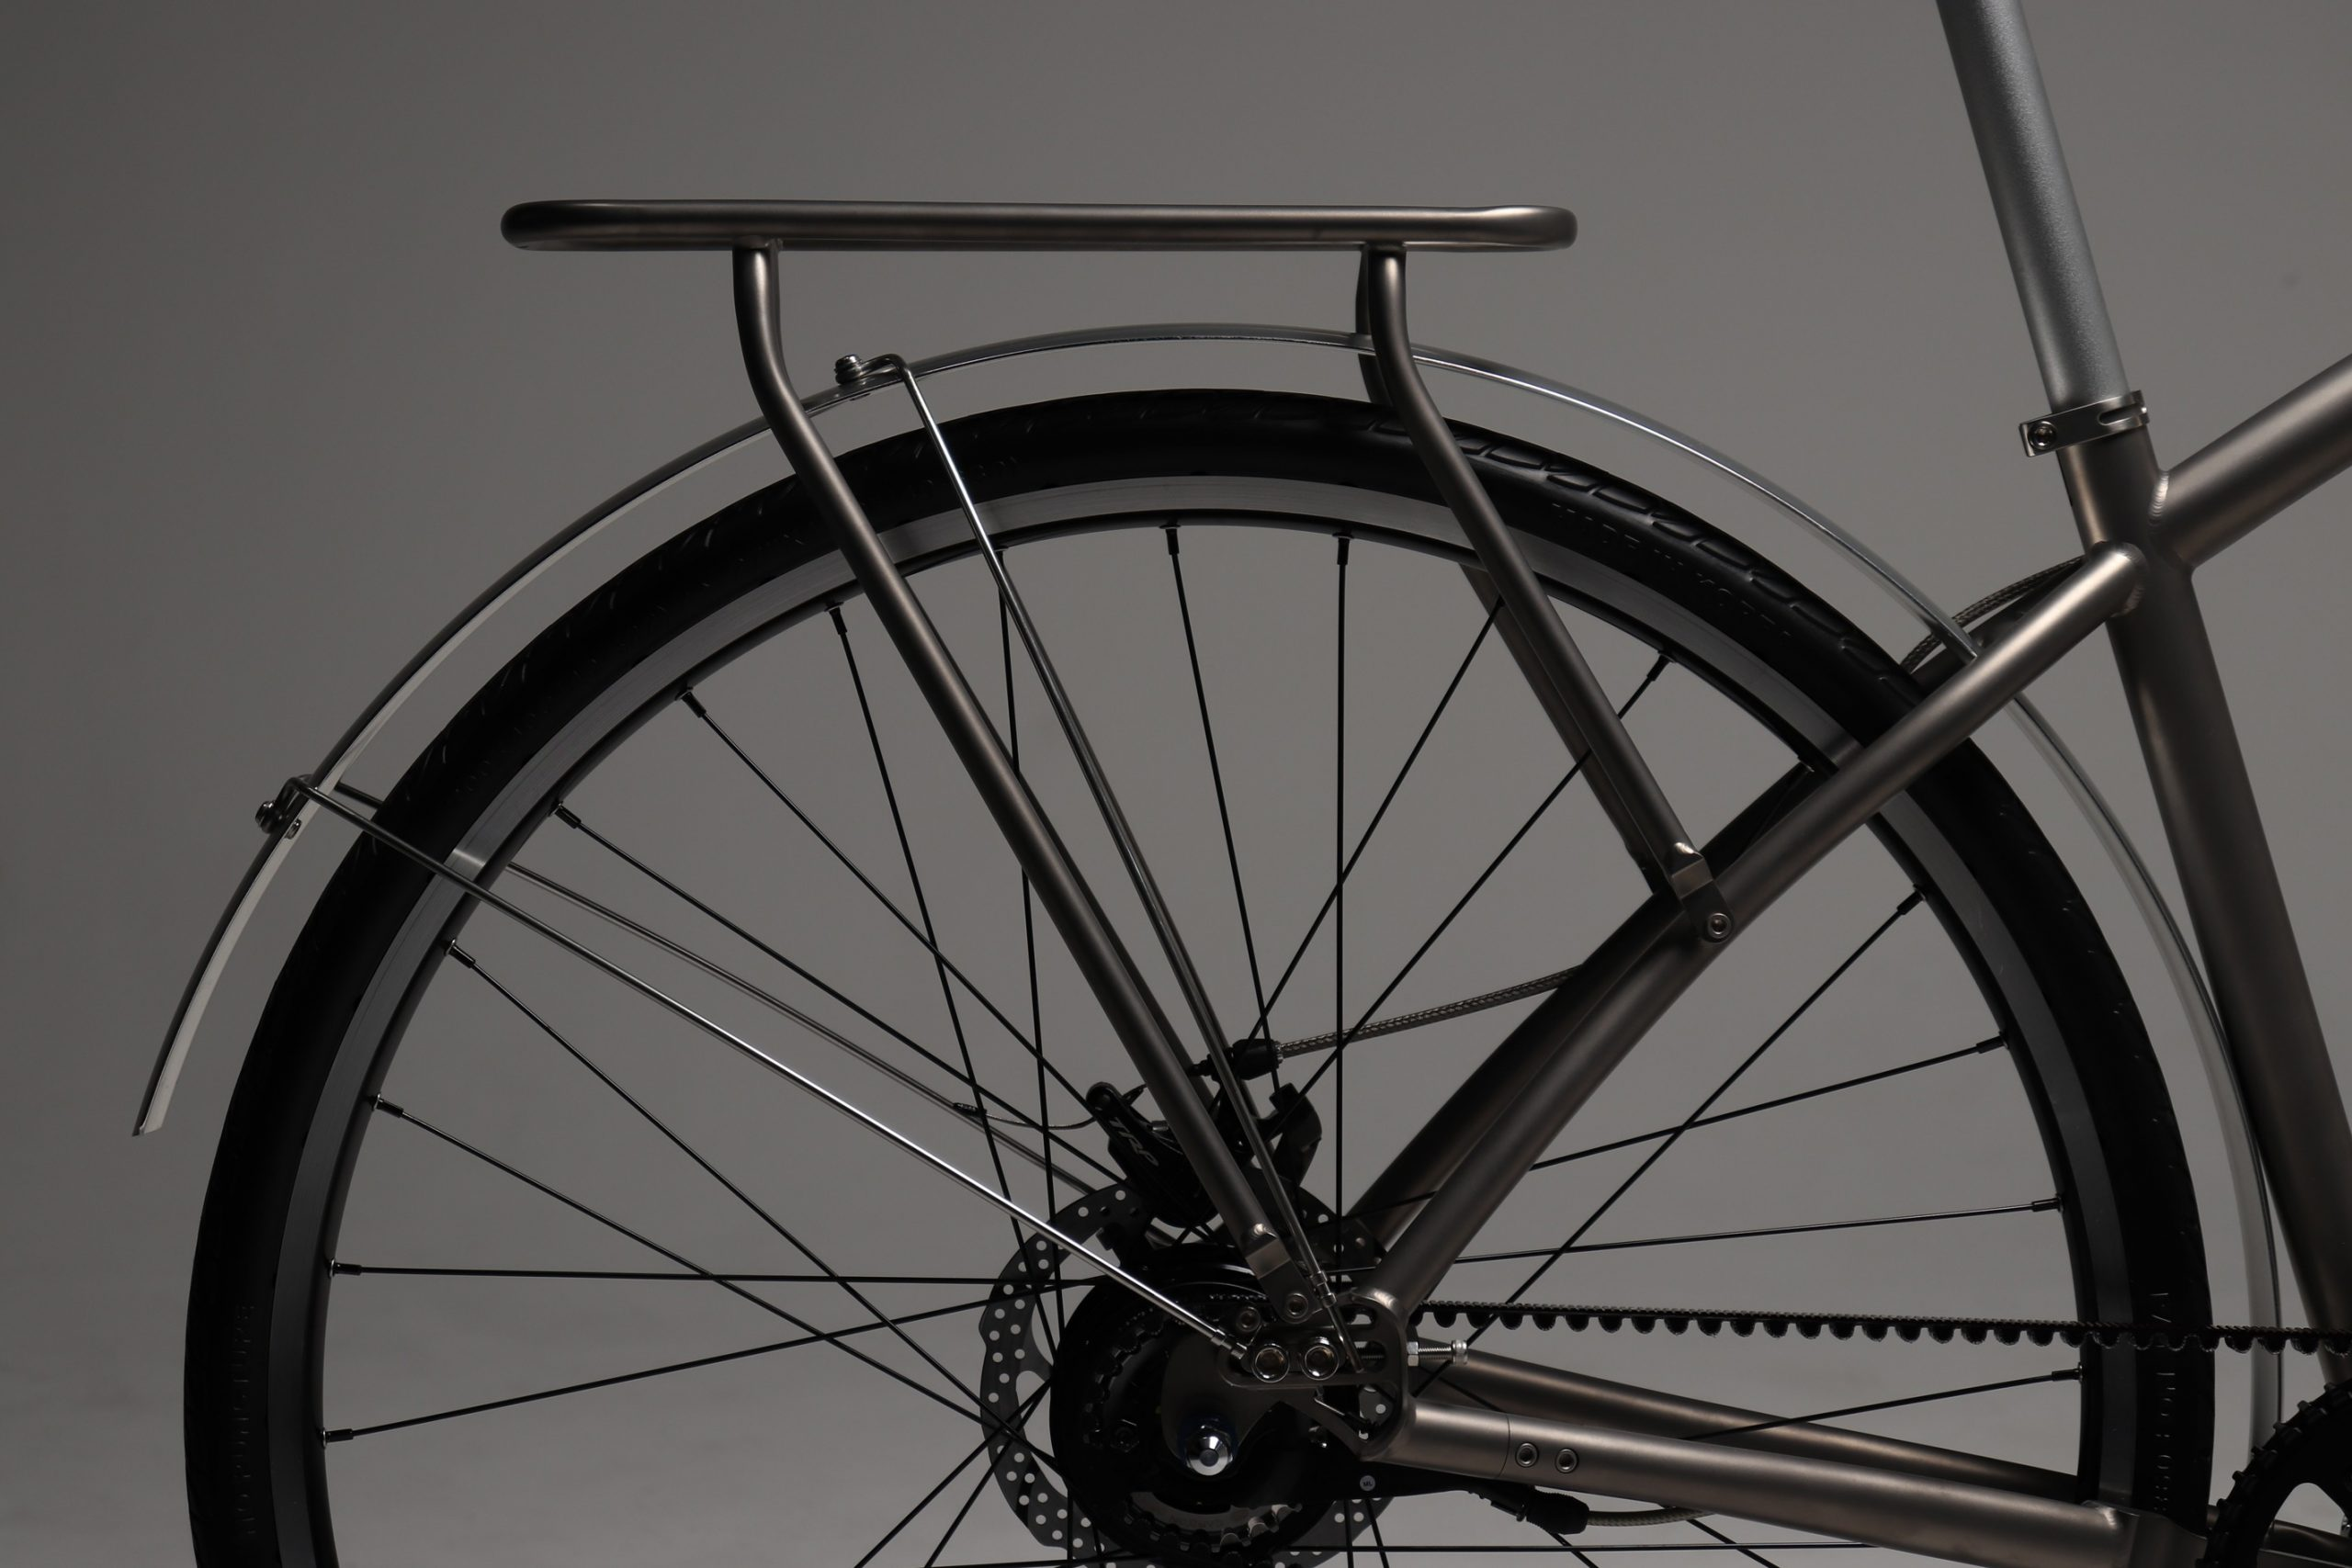 The Urban Bike CT9.1 Titanium Top Rack